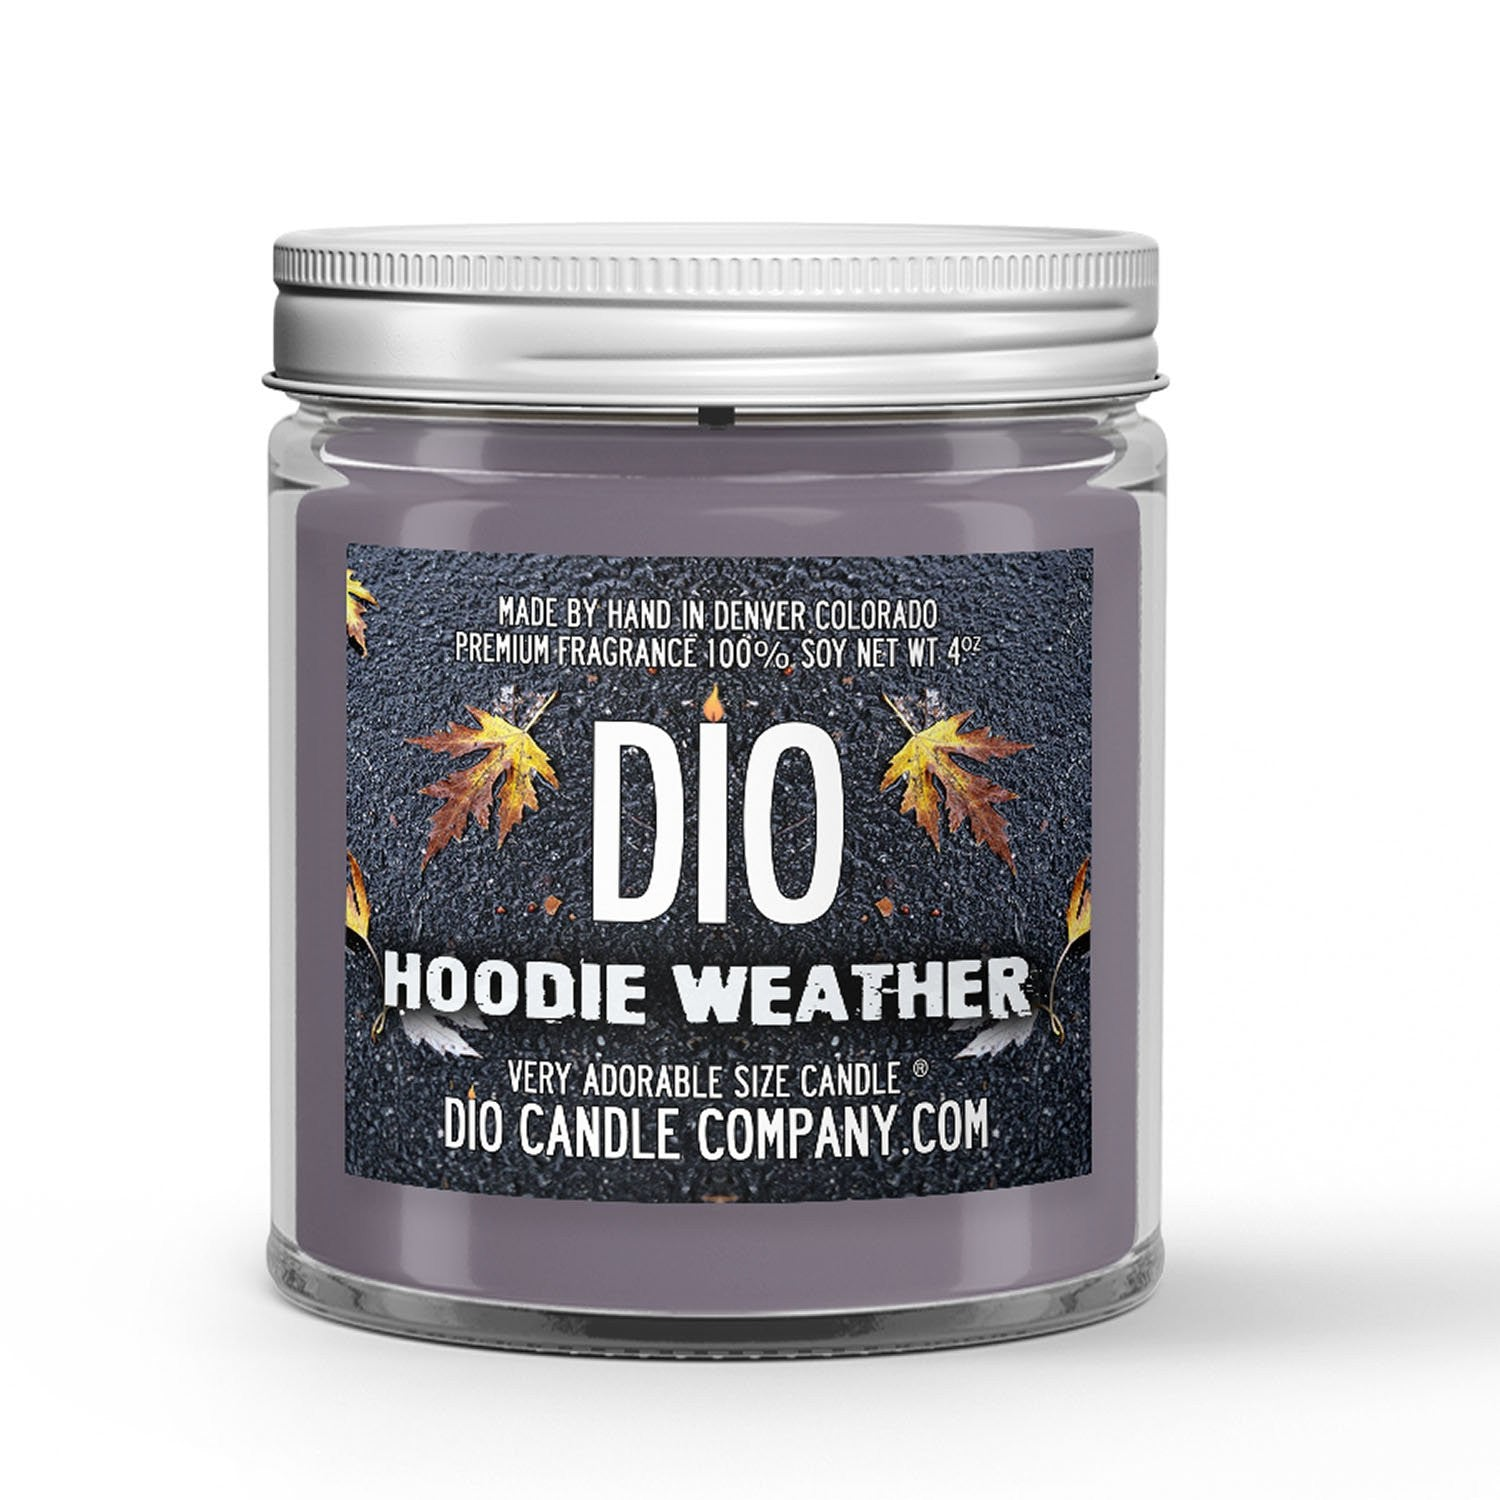 Hoodie Weather Candle - Heather Sweatshirt - Chilly Autumn Air - 4oz Very Adorable Size Candle® - Dio Candle Company